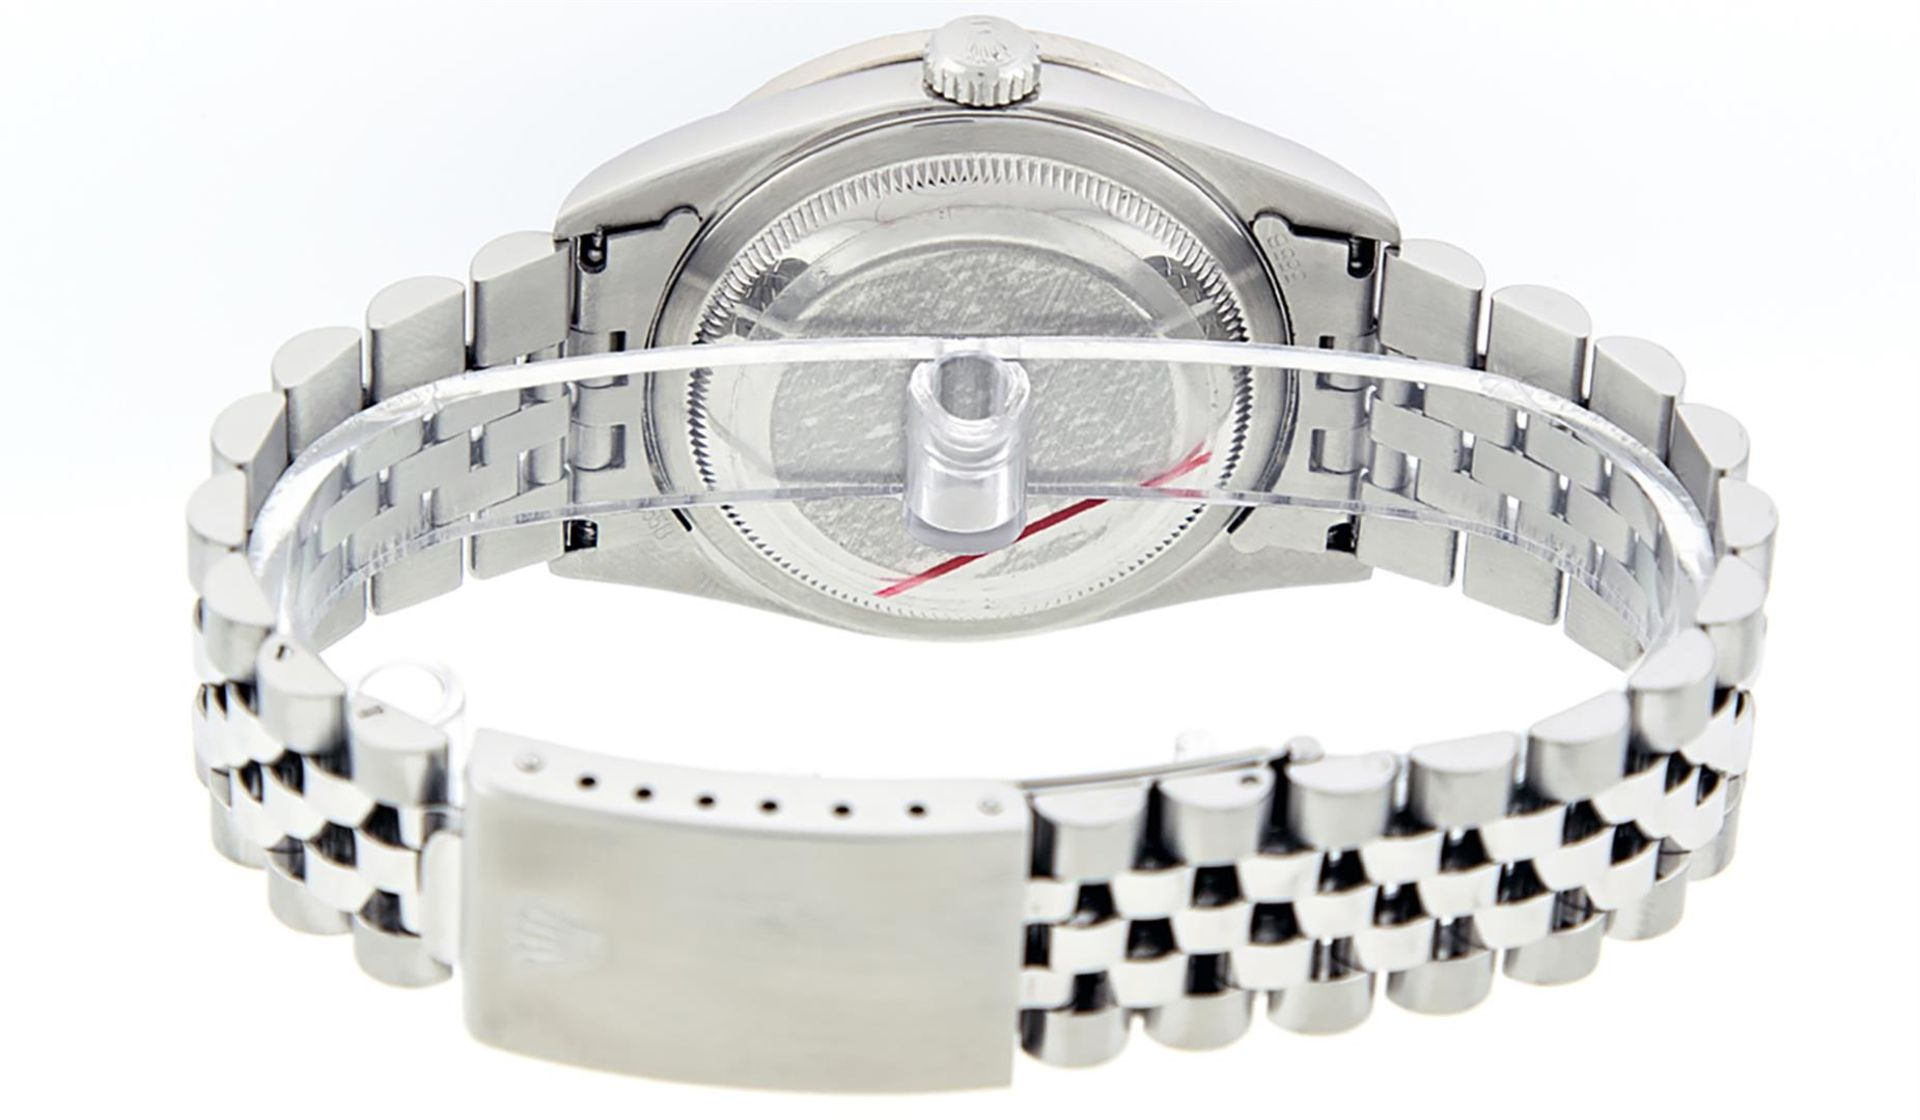 Rolex Mens Stainless Steel Mother Of Pearl Diamond 36MM Datejust Wristwatch - Image 7 of 8